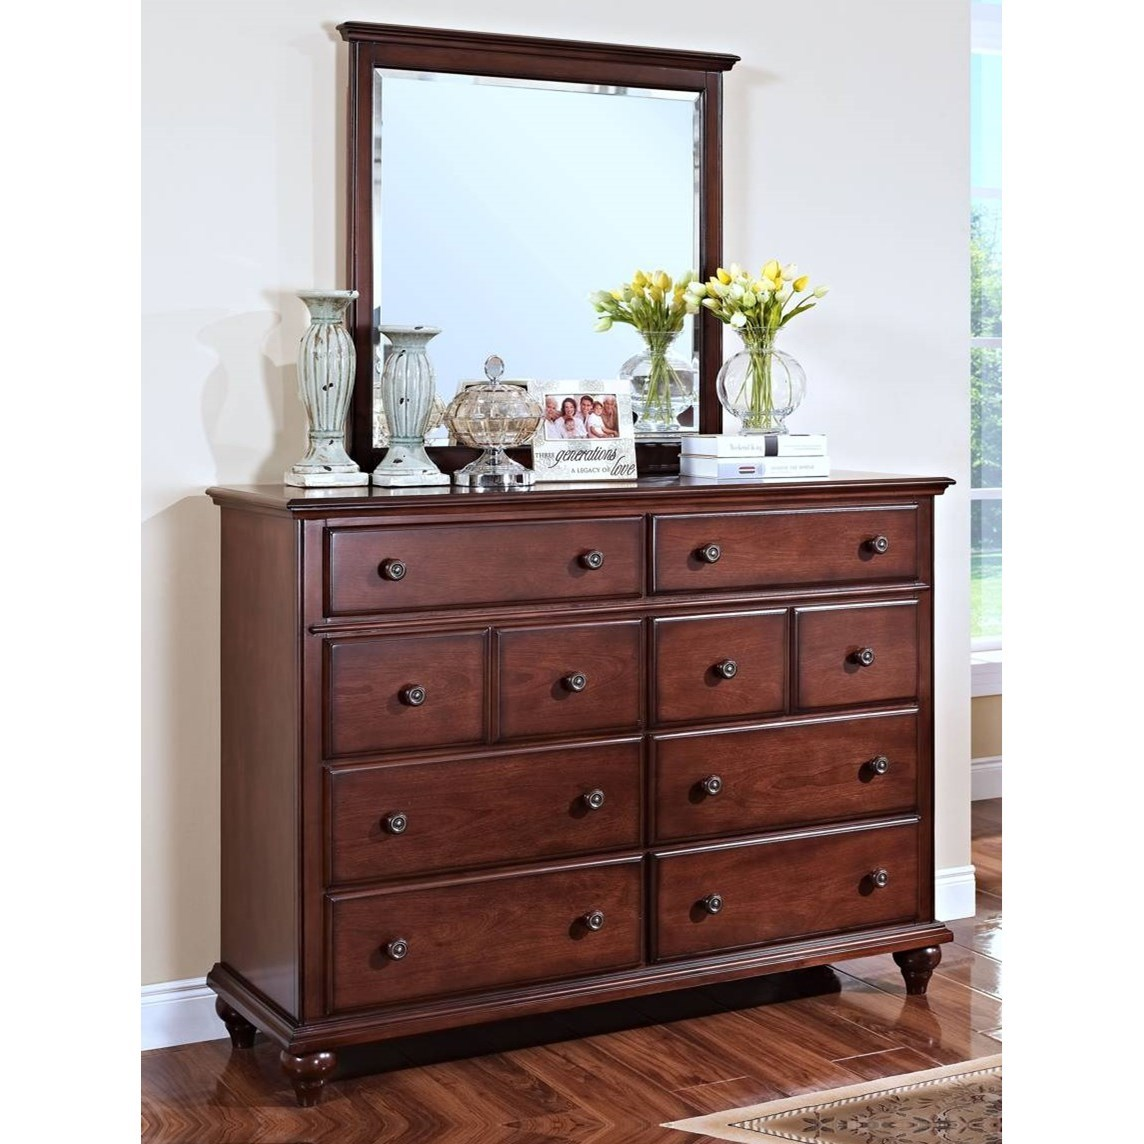 New Classic Spring Creek 00 146 050 Eight Drawer Dresser With Metal Drawer Knobs Beck 39 S